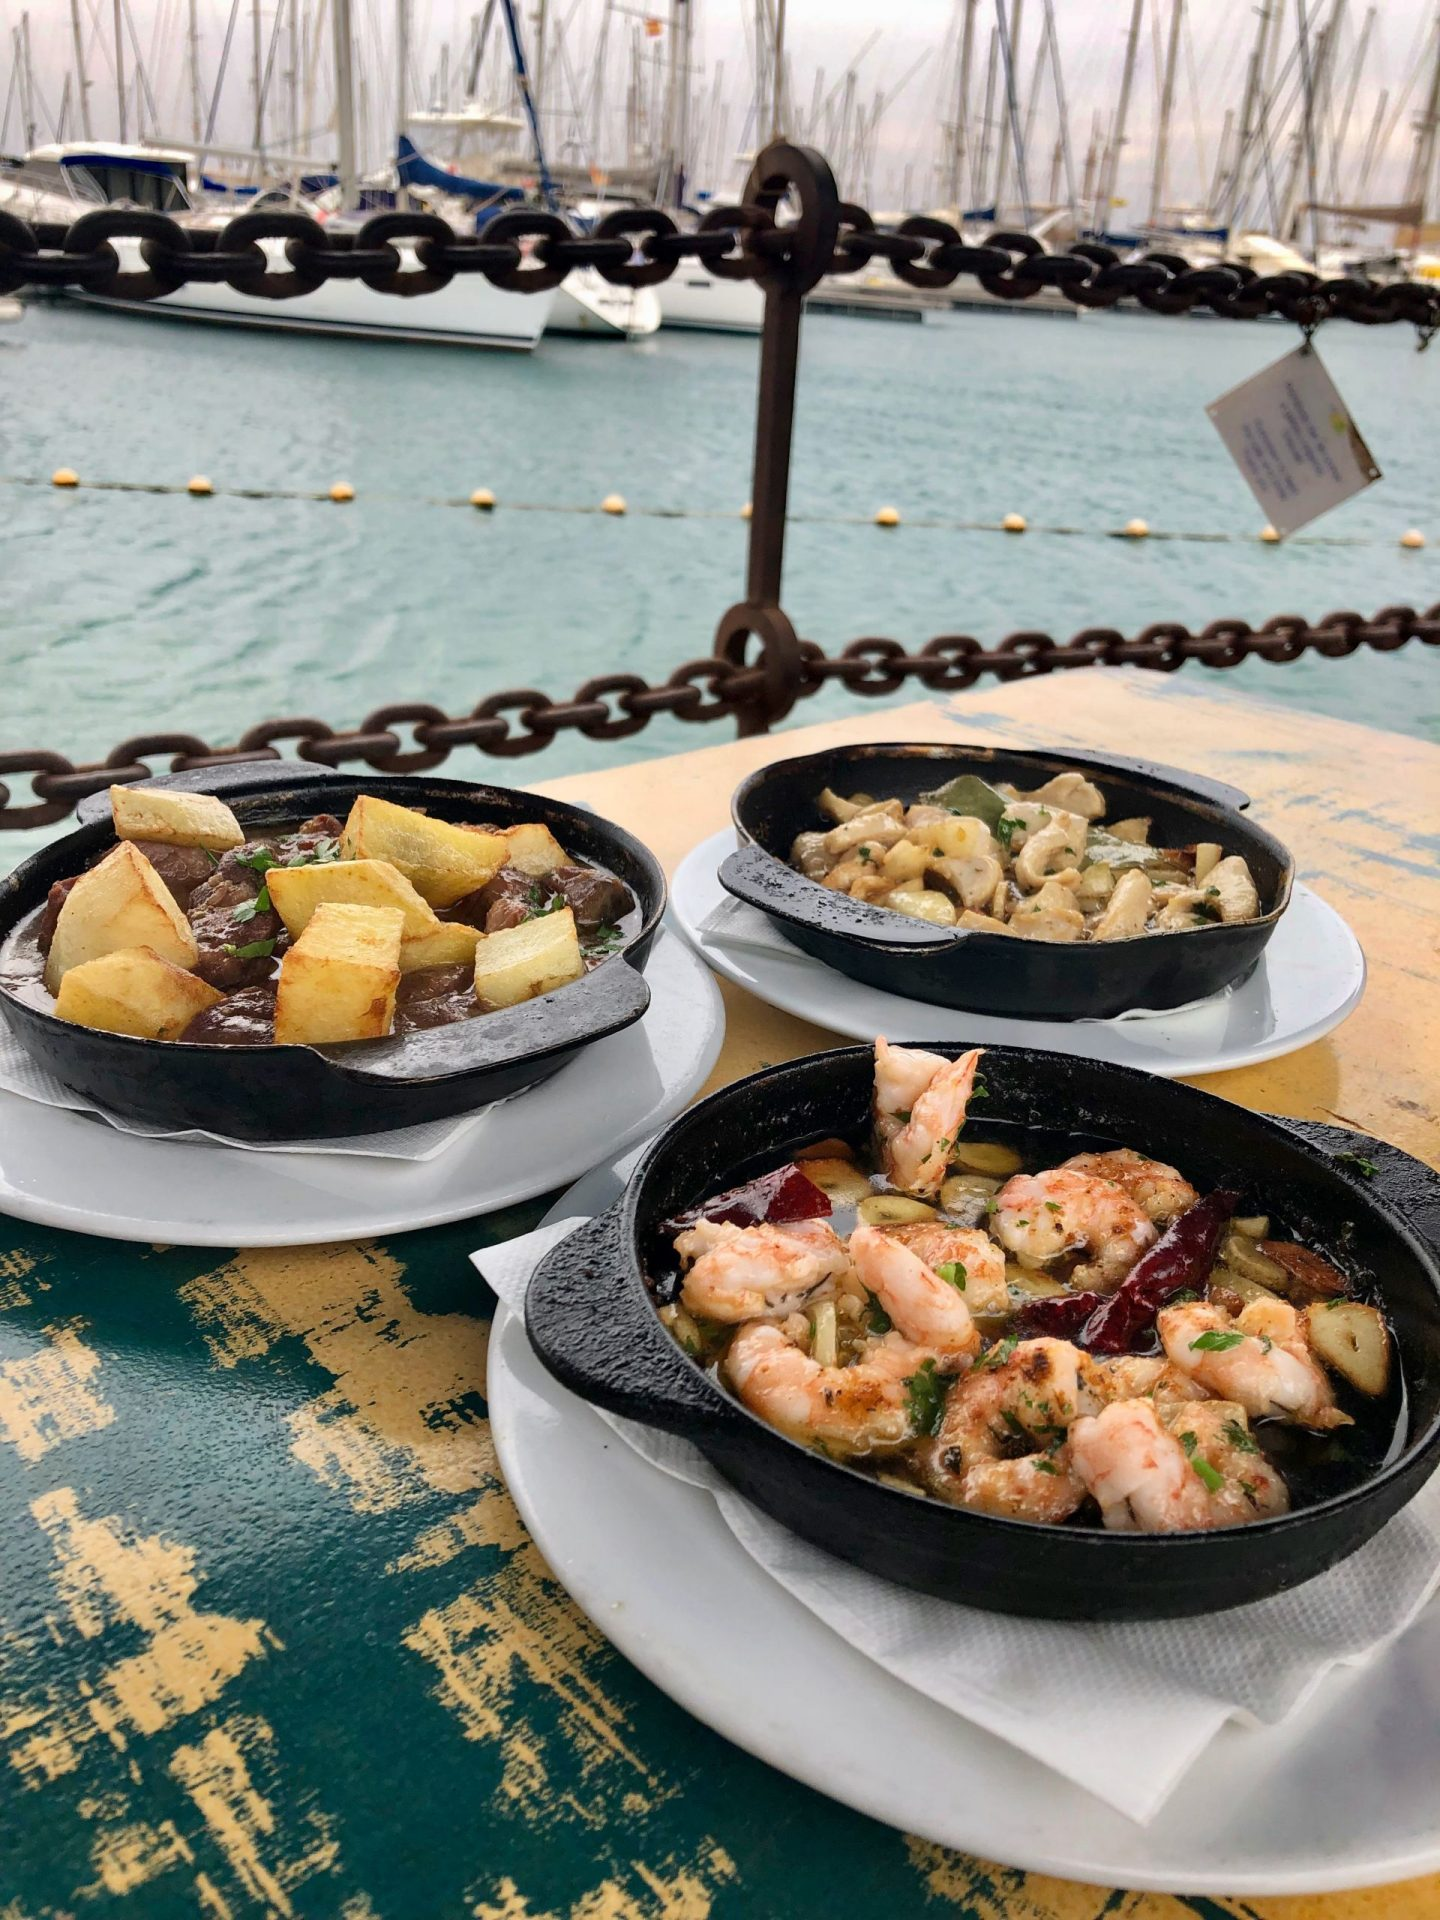 Three plates of tapas, served in black dishes. Shows garlic prawns, garlic chicken and beef stew. In the background you can see Playa Blanca Marina.